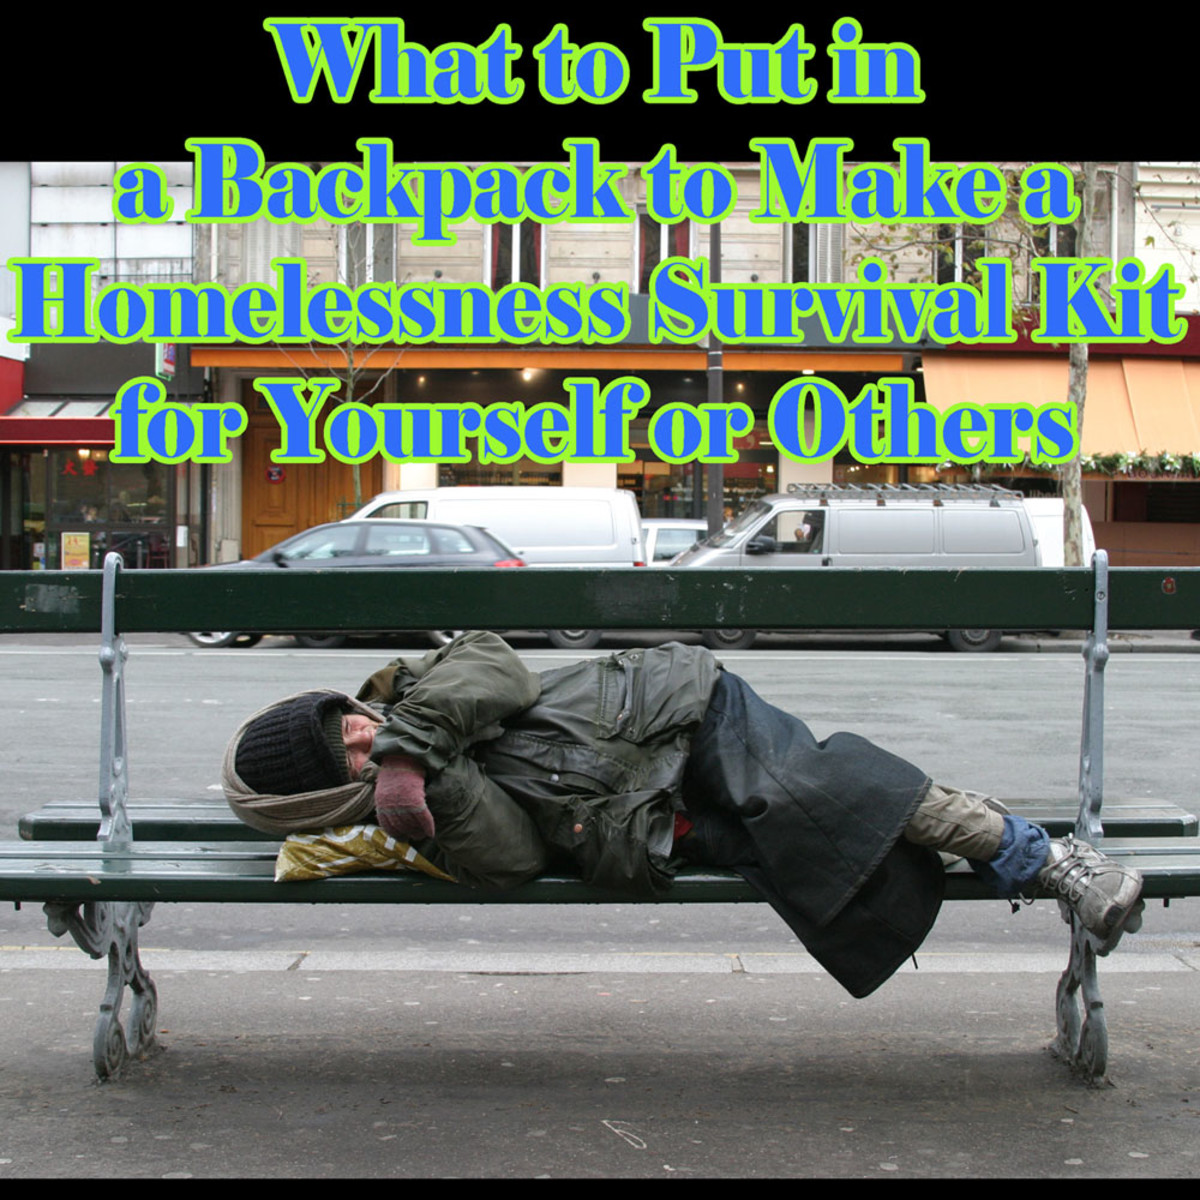 What to Buy if You Are Homeless